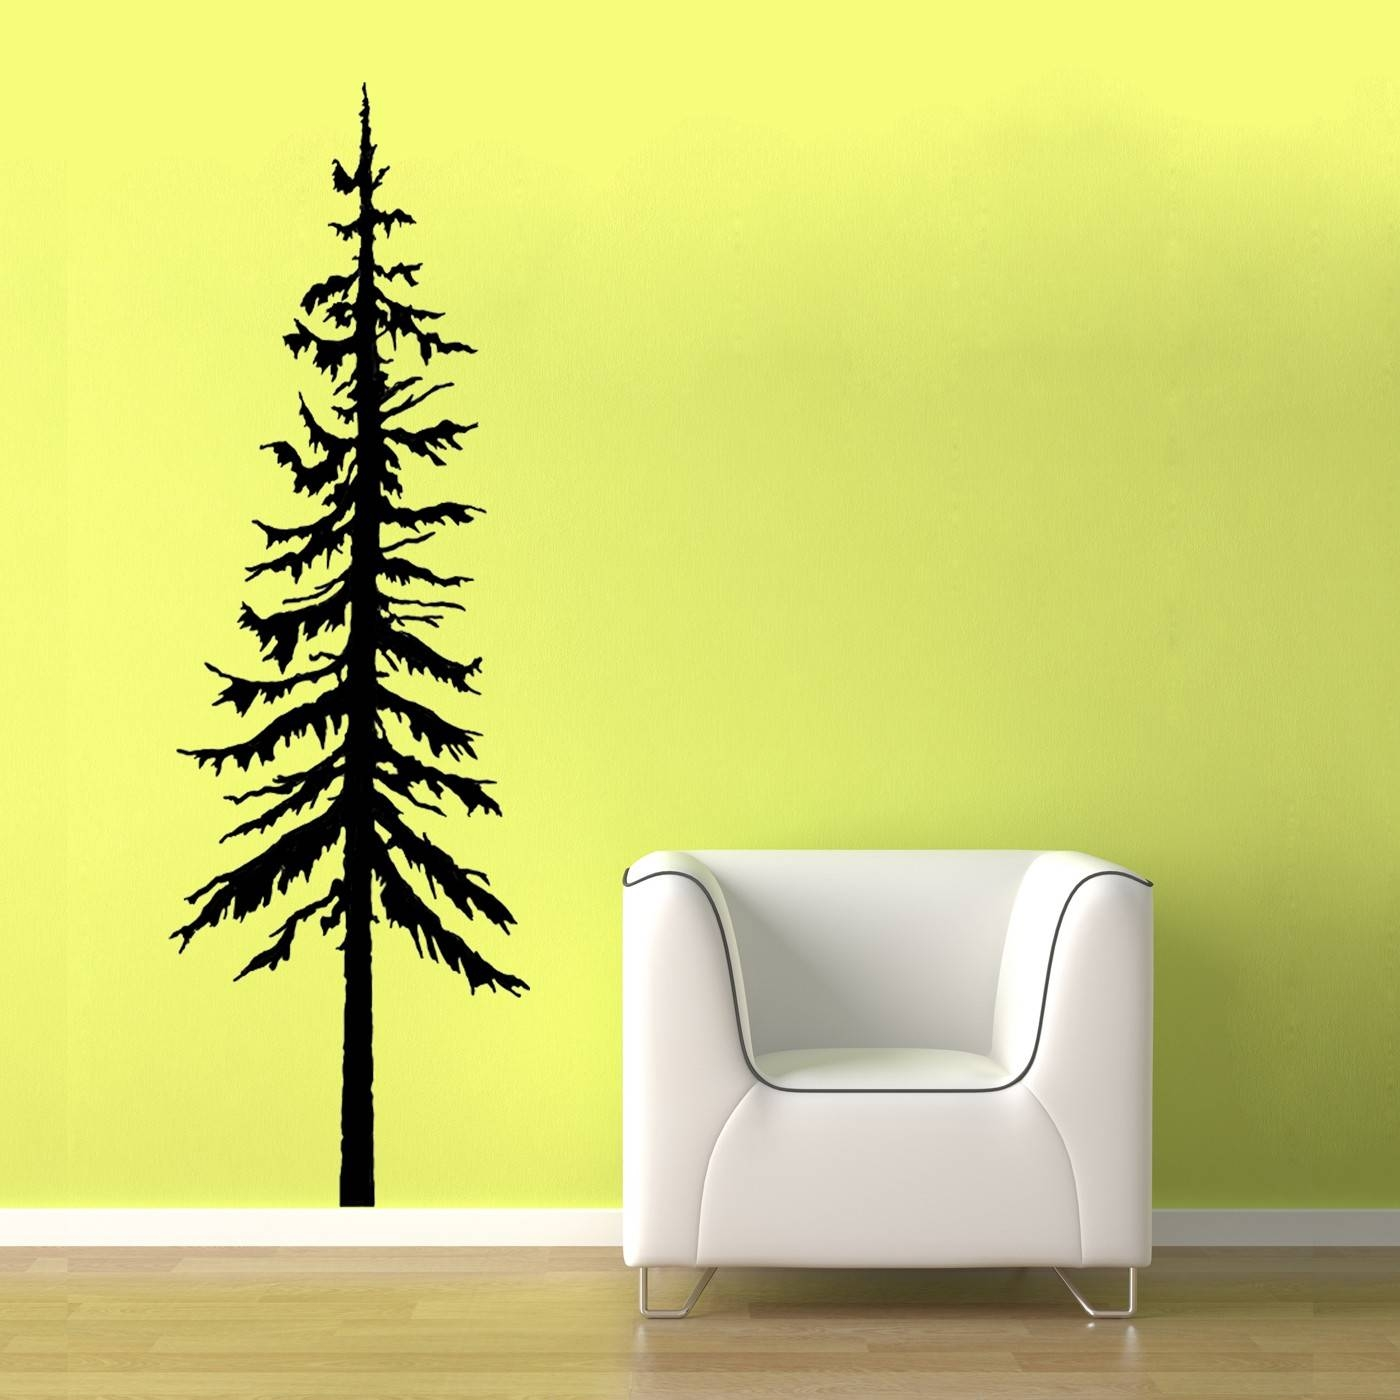 Pine Tree Decal Vinyl Wall Graphic Pine Tree Decal Pine Intended For Current Pine Tree Wall Art (View 13 of 30)